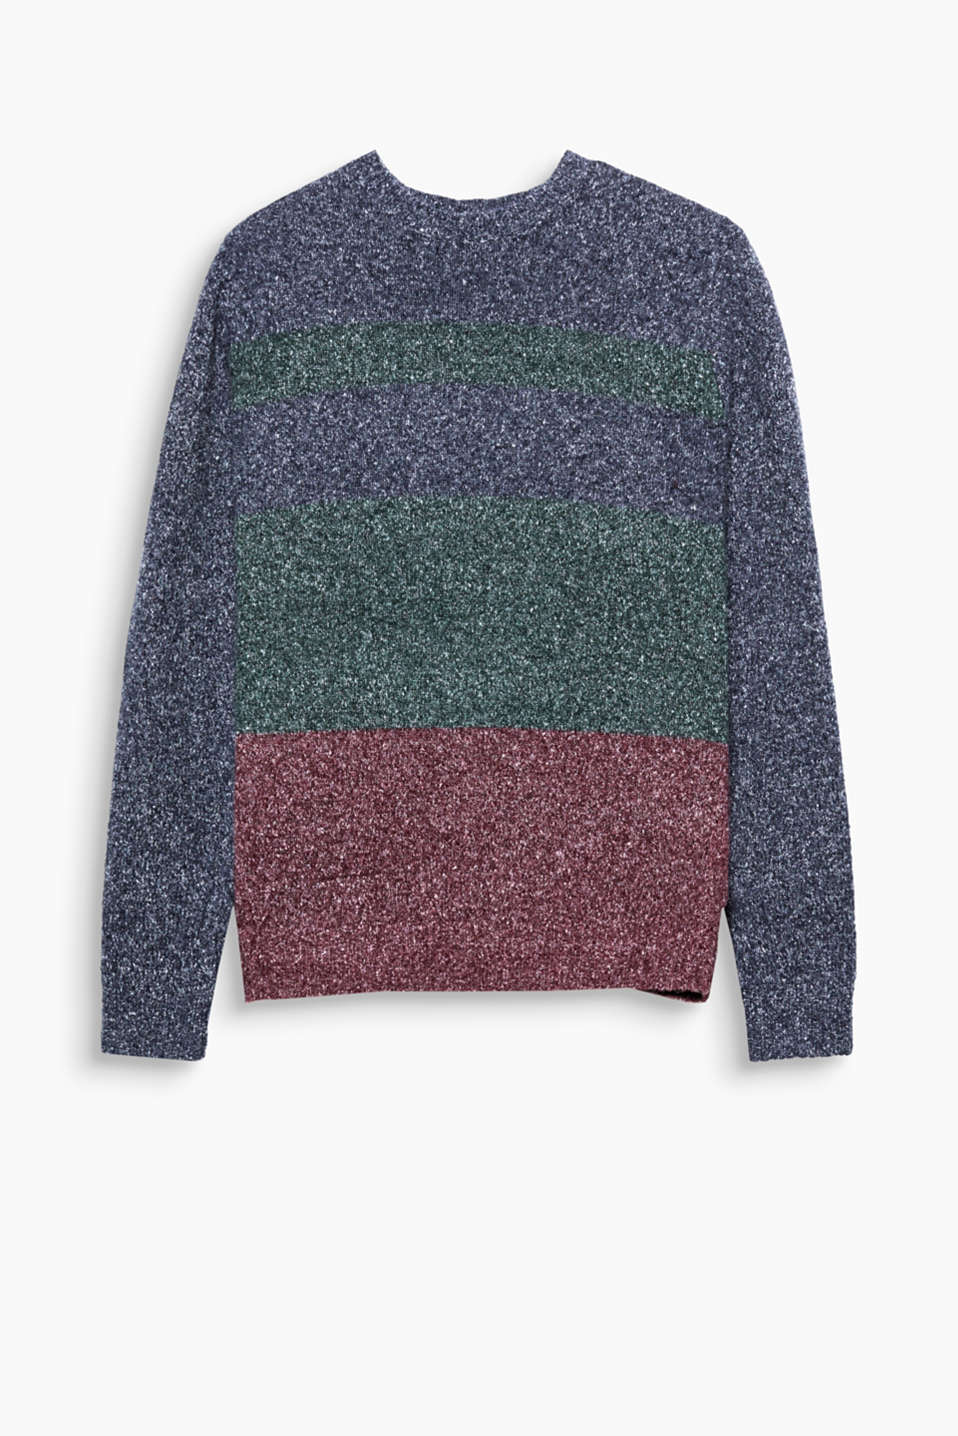 We love knitwear - especially with retro charm! This jumper impresses with its block stripes.